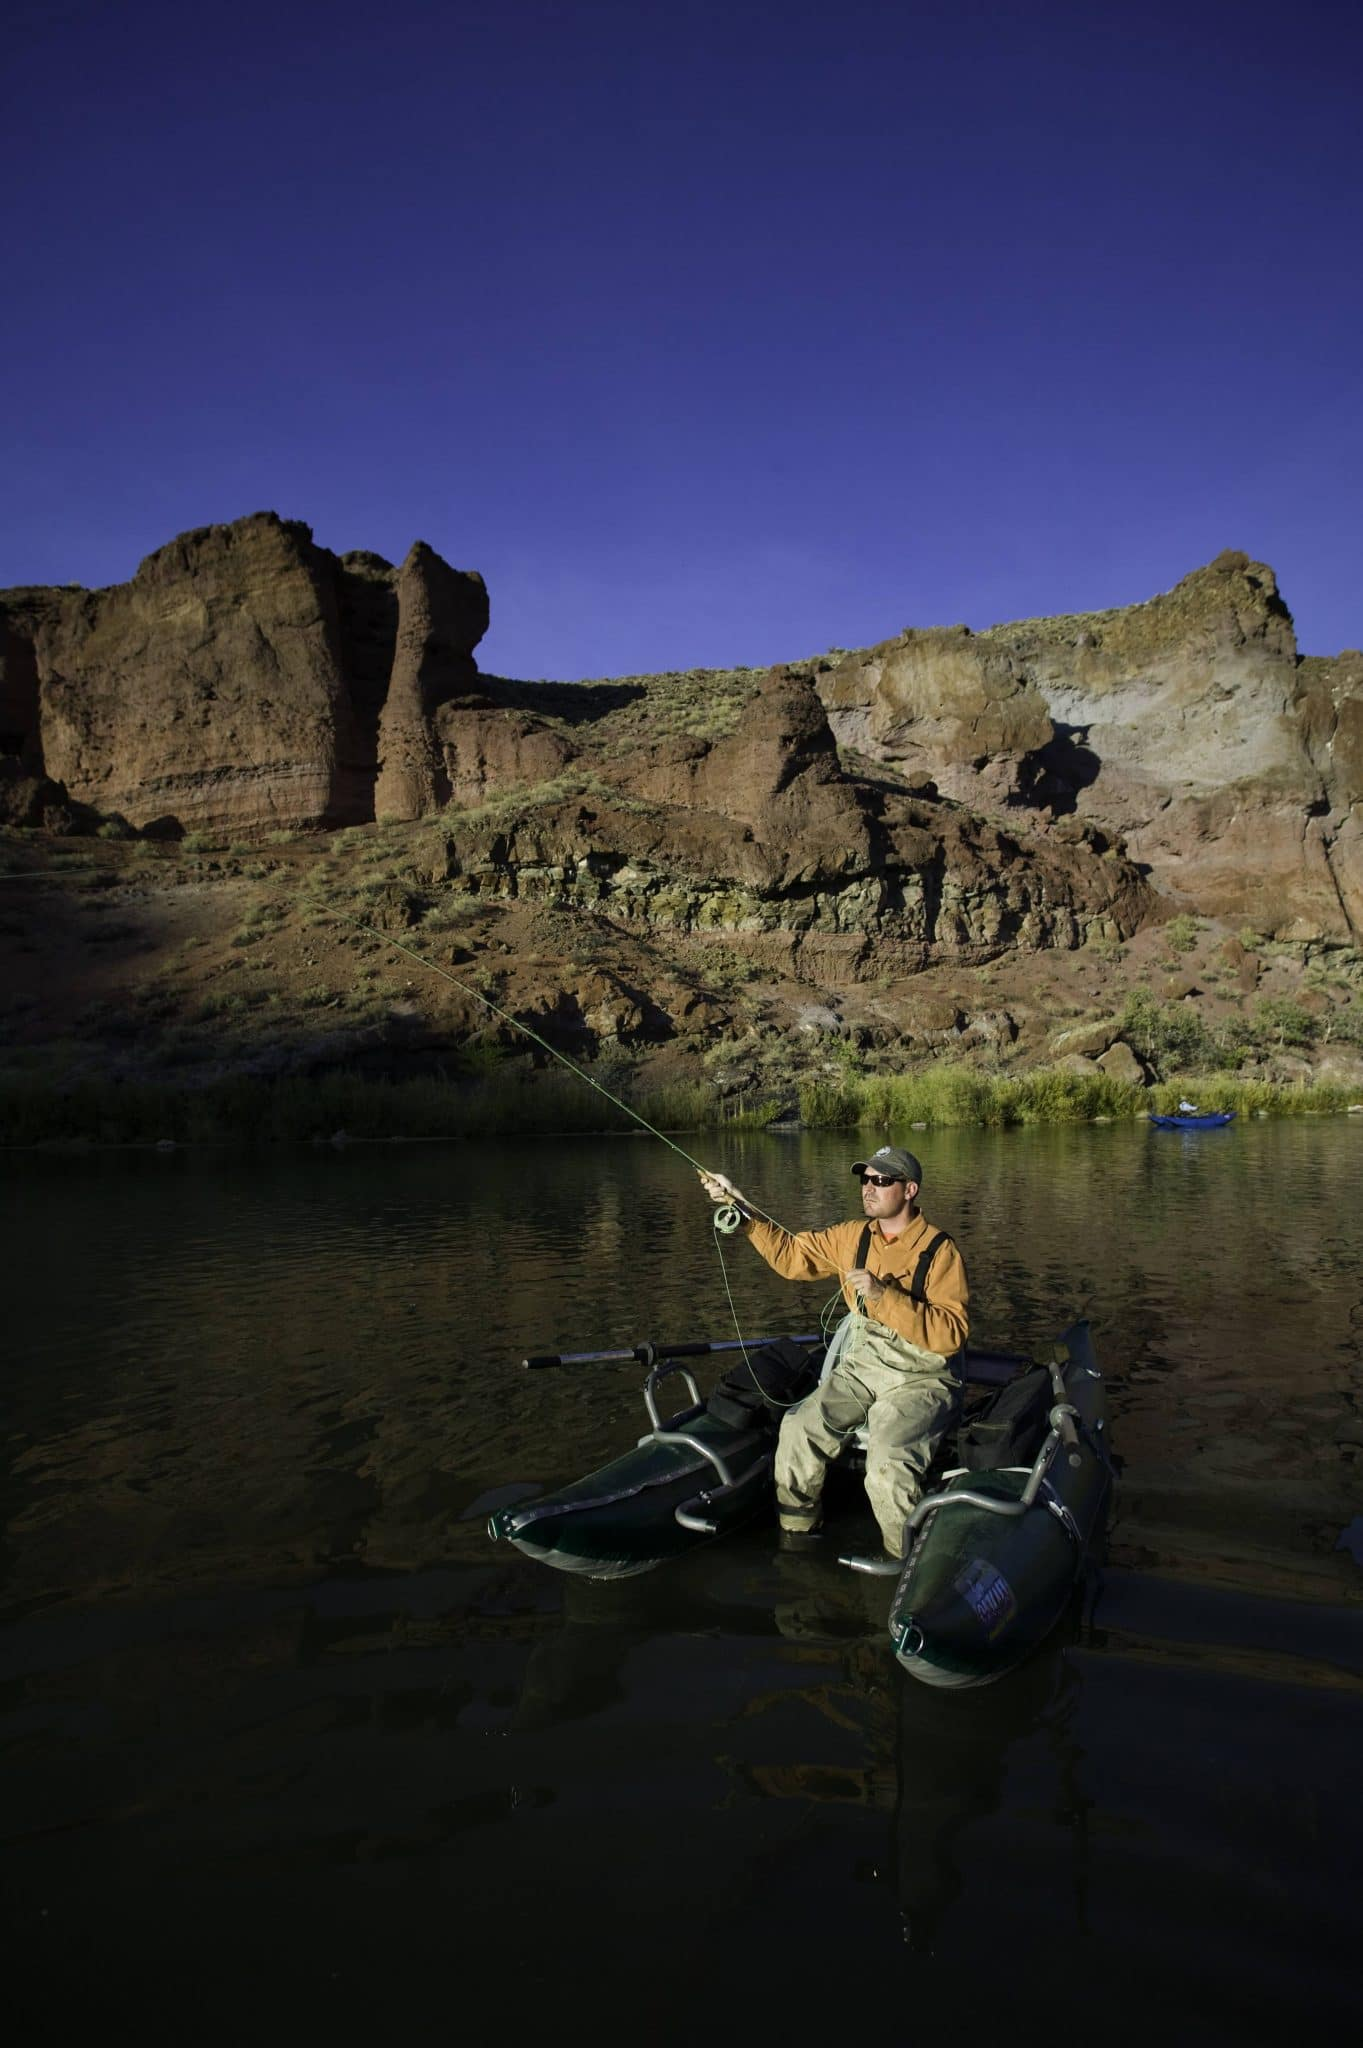 Fly fishing on the lower Owyhee River, a blue ribbon Brown Trout fishery in Southeast Oregon.